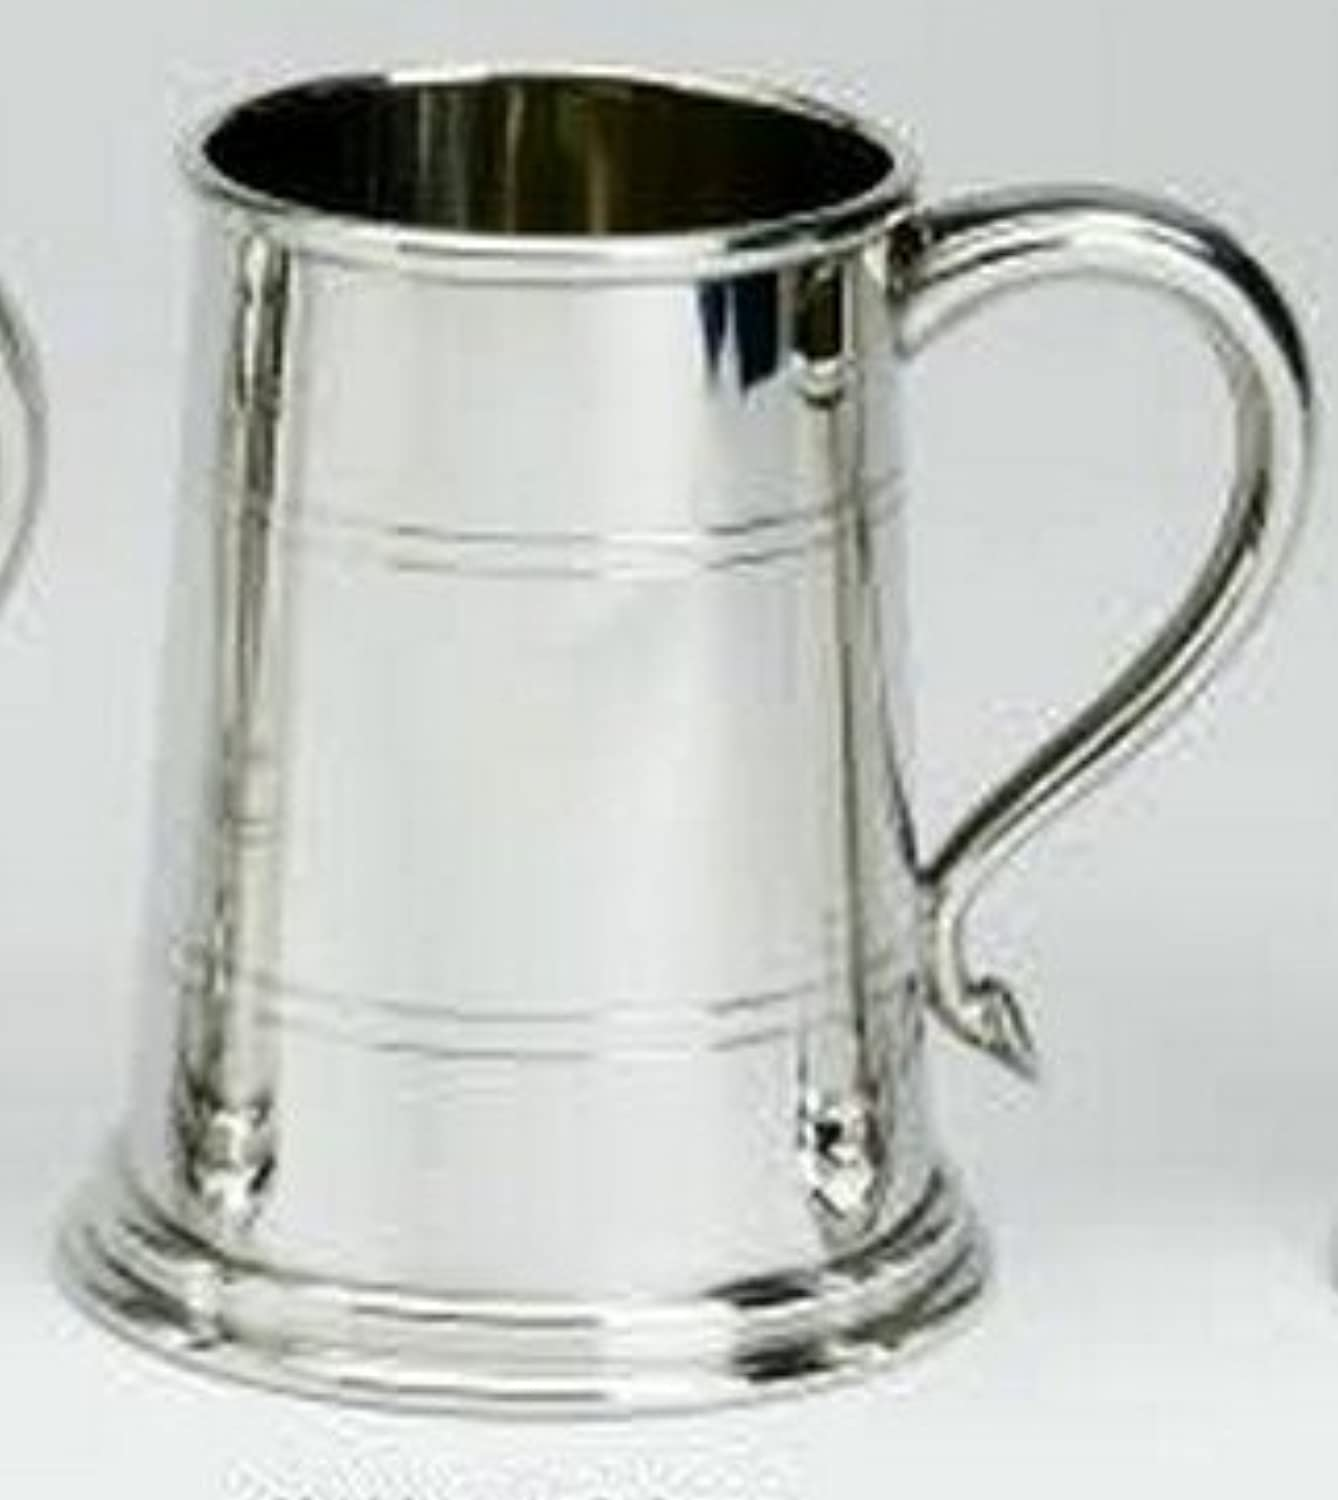 1 Pint Tankard. Wells made from fine English Pewter comes with a prideindetails box ref 63400